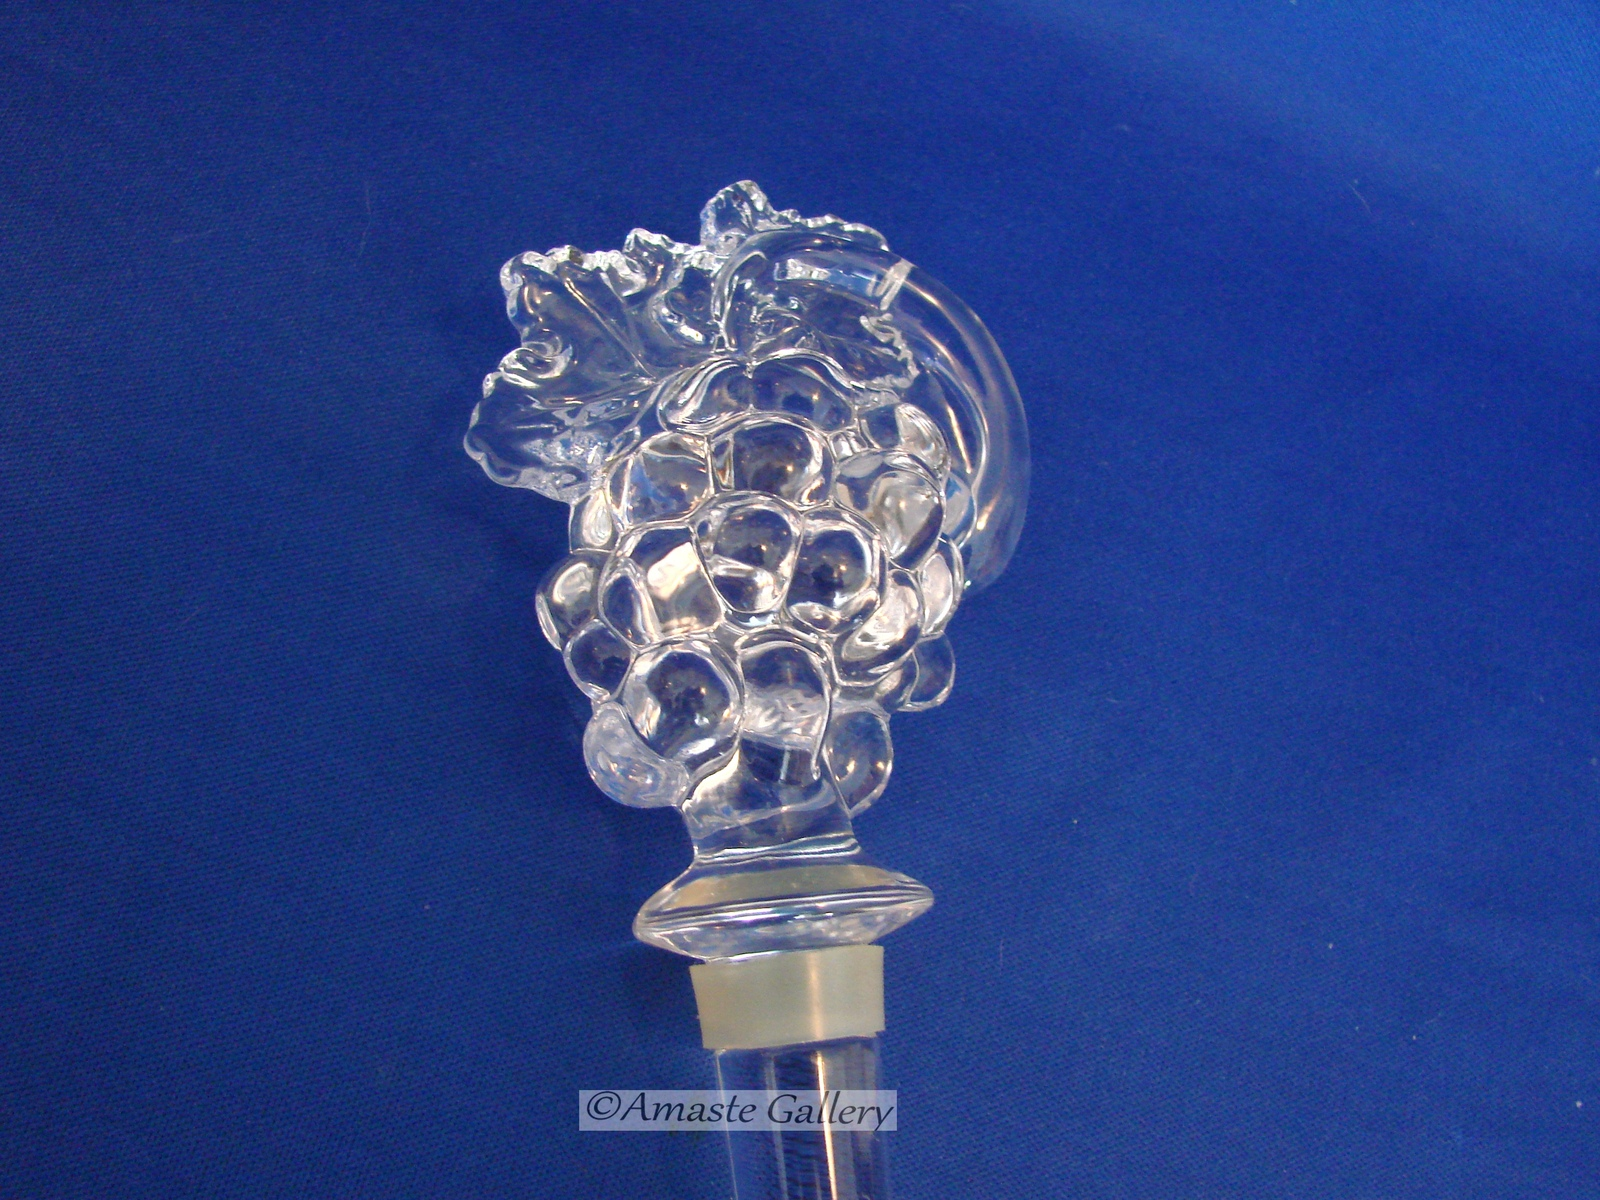 MIKASA Bottle Decanter STOPPER Lead Crystal Grapes Leaves image 3